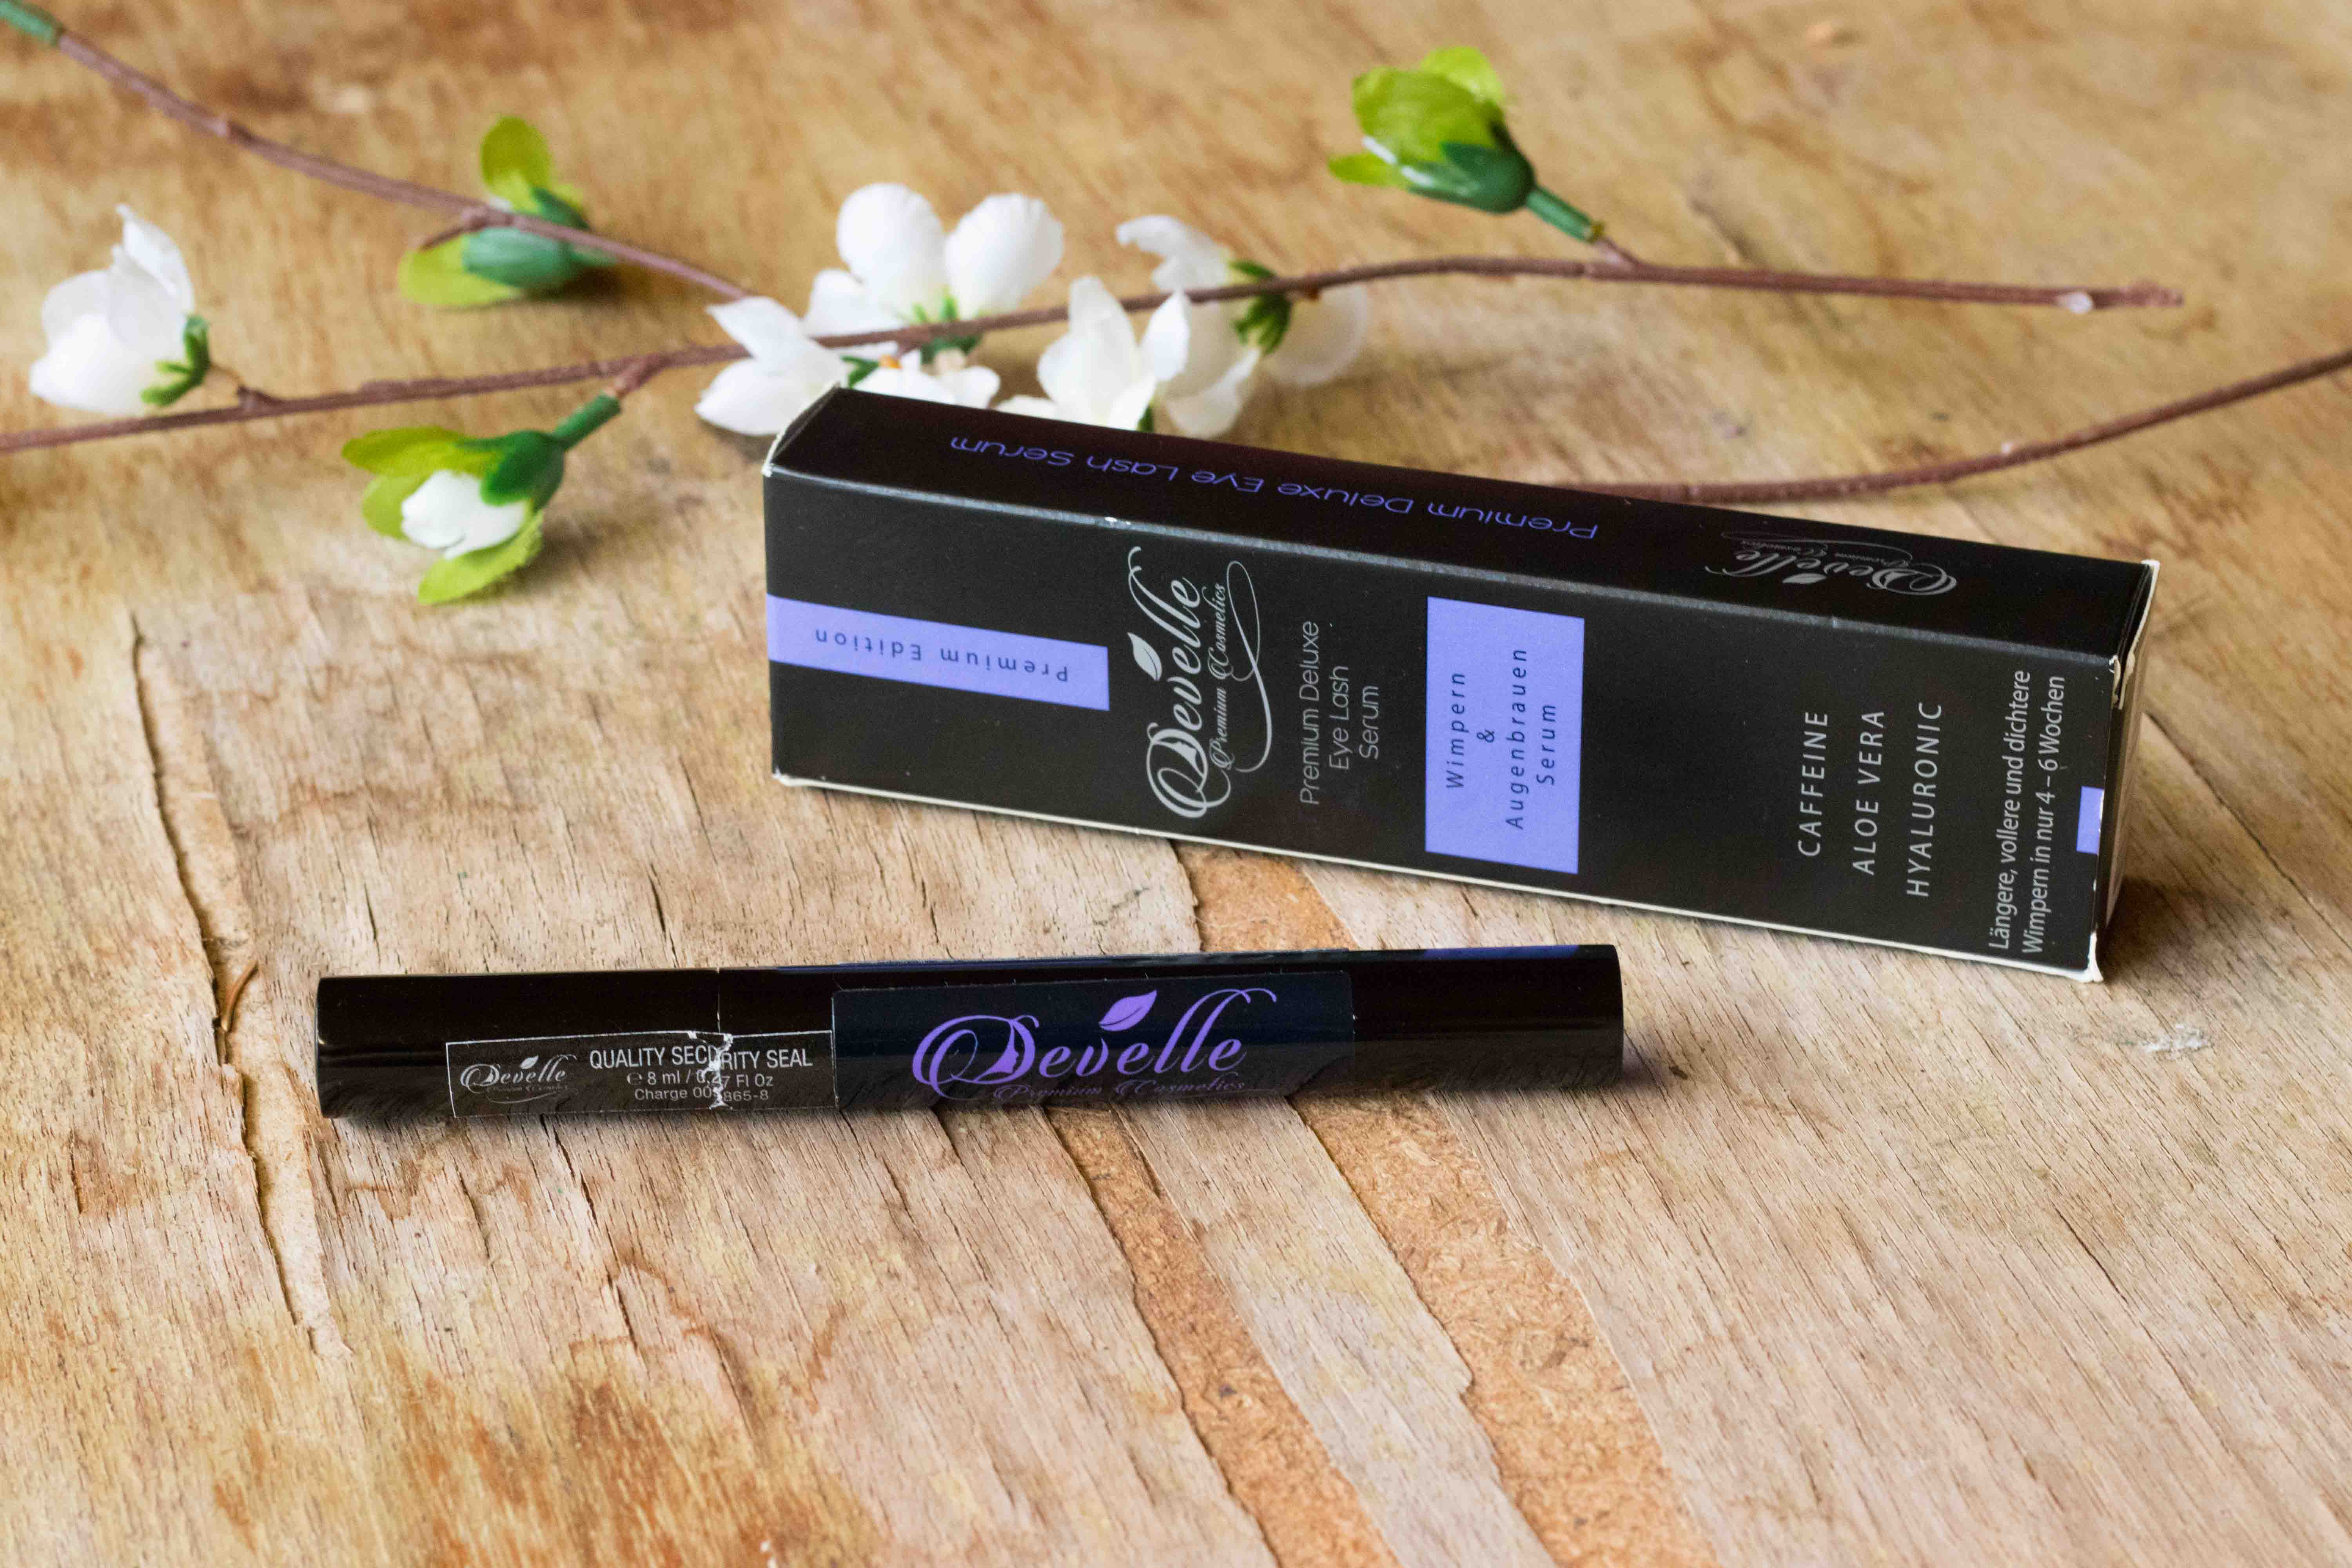 Develle Wimpern und Augenbrauen Serum Premium Deluxe Eye Lash Serum Review